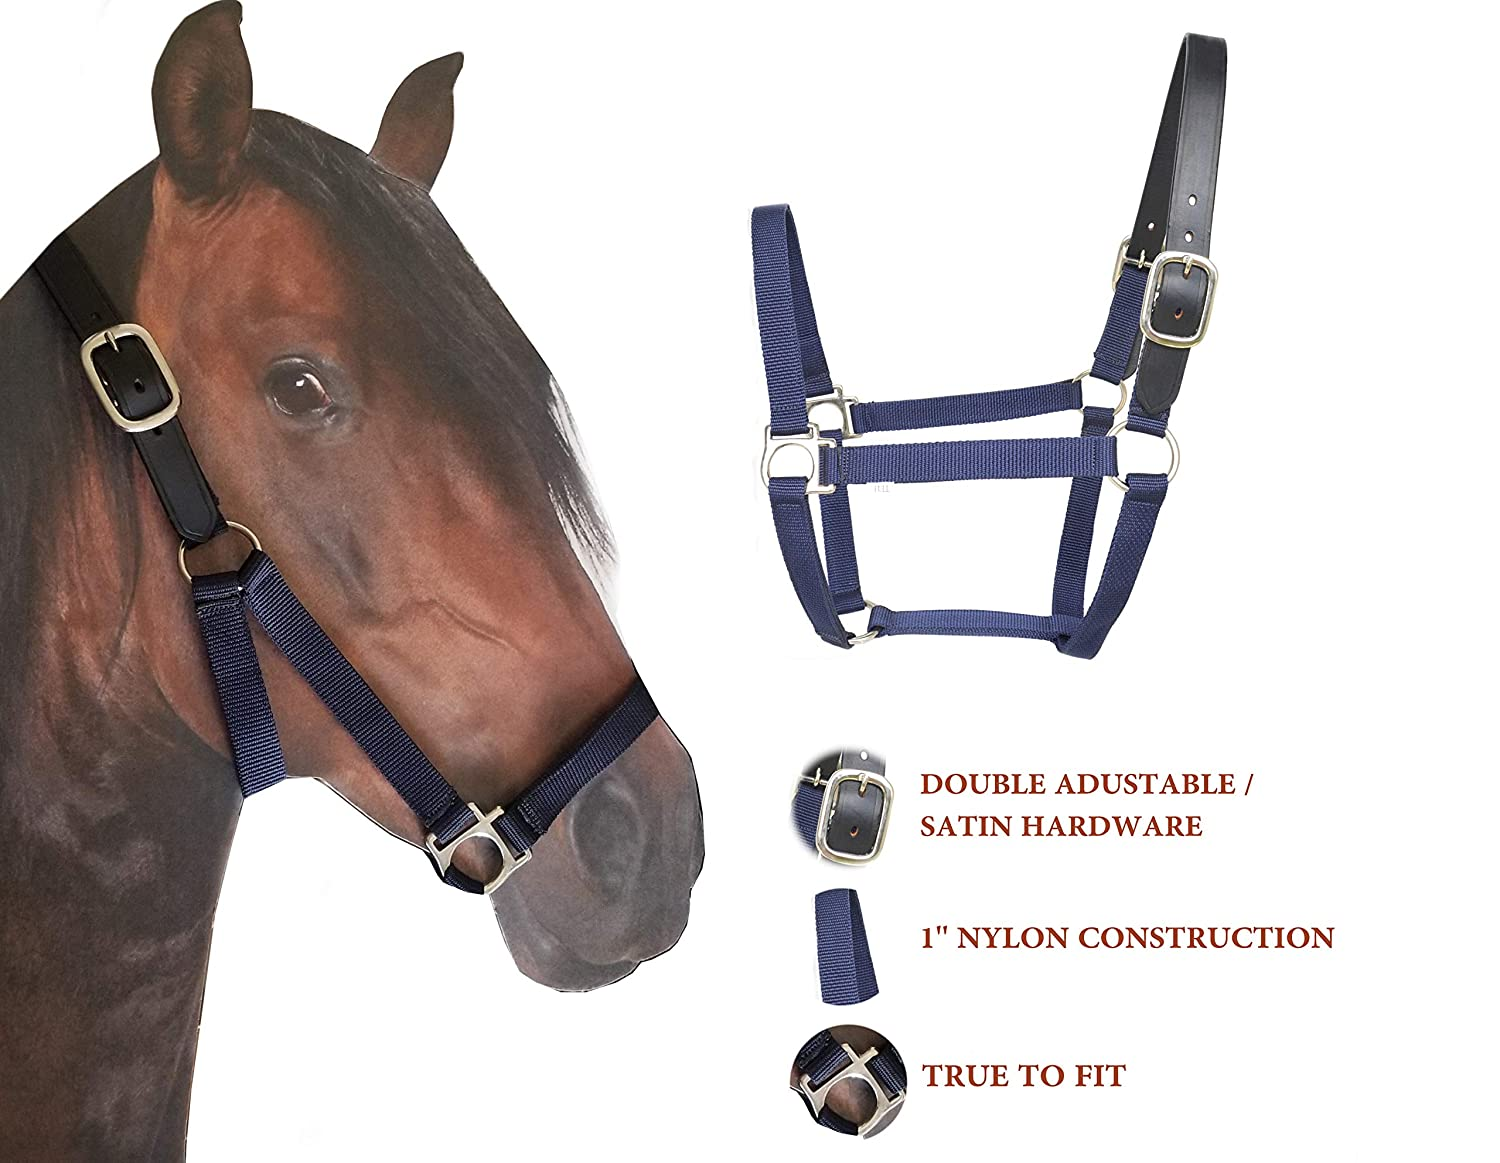 Large Horse//Draft SIE Westride Nylon Breakaway Horse Halter Leather Crown//Safety Halter Navy Blue